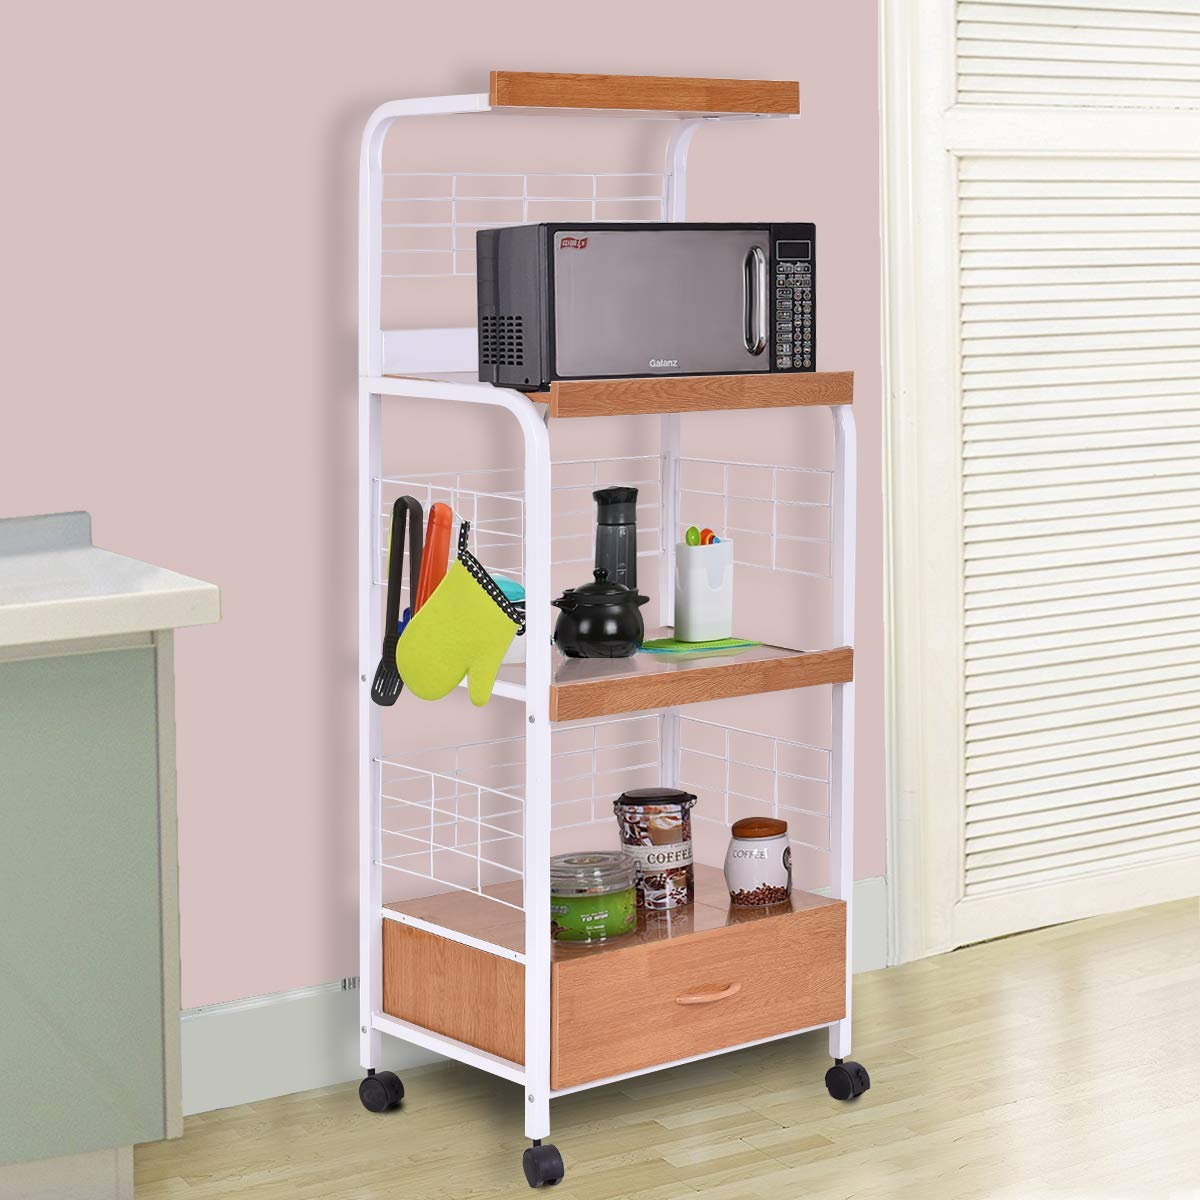 Giantex Microwave Cart Kitchen Baker's Rack Microwave Oven Stand Rolling Kitchen Storage Cart Utensils Organizer w/Electric Outlet and Drawer by Giantex (Image #3)